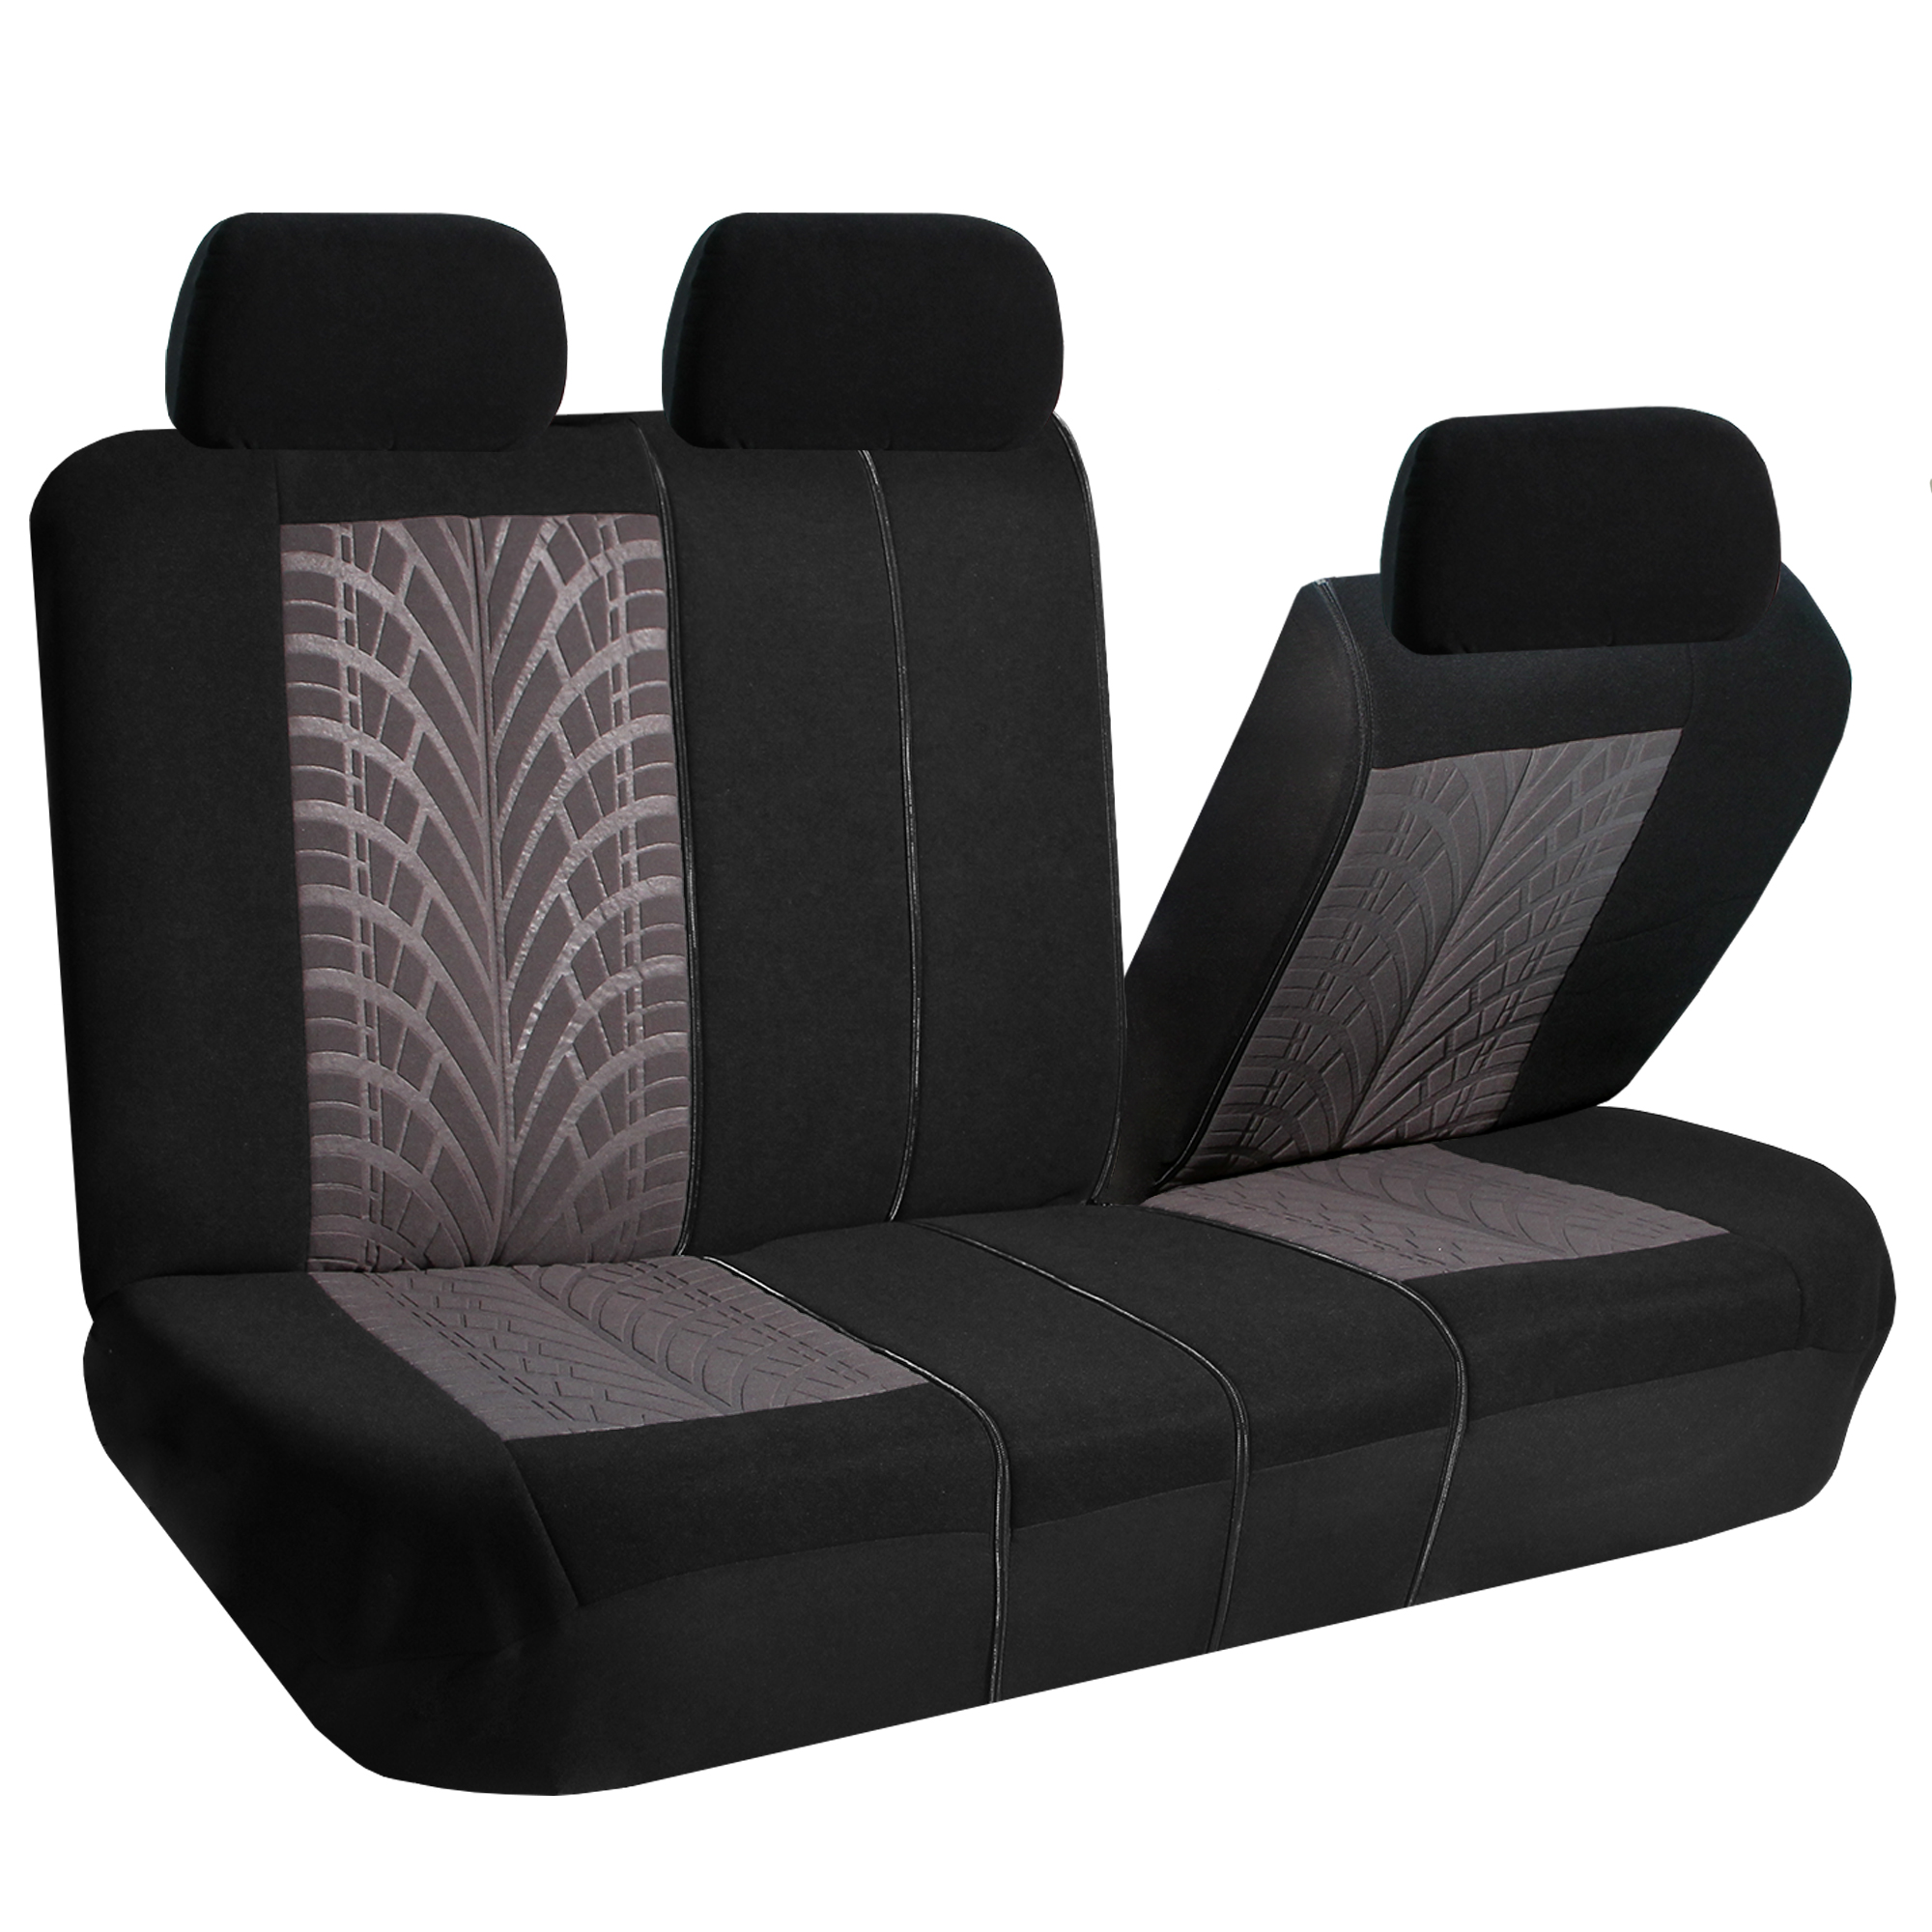 gray car seat covers set for auto w floor mat ebay. Black Bedroom Furniture Sets. Home Design Ideas